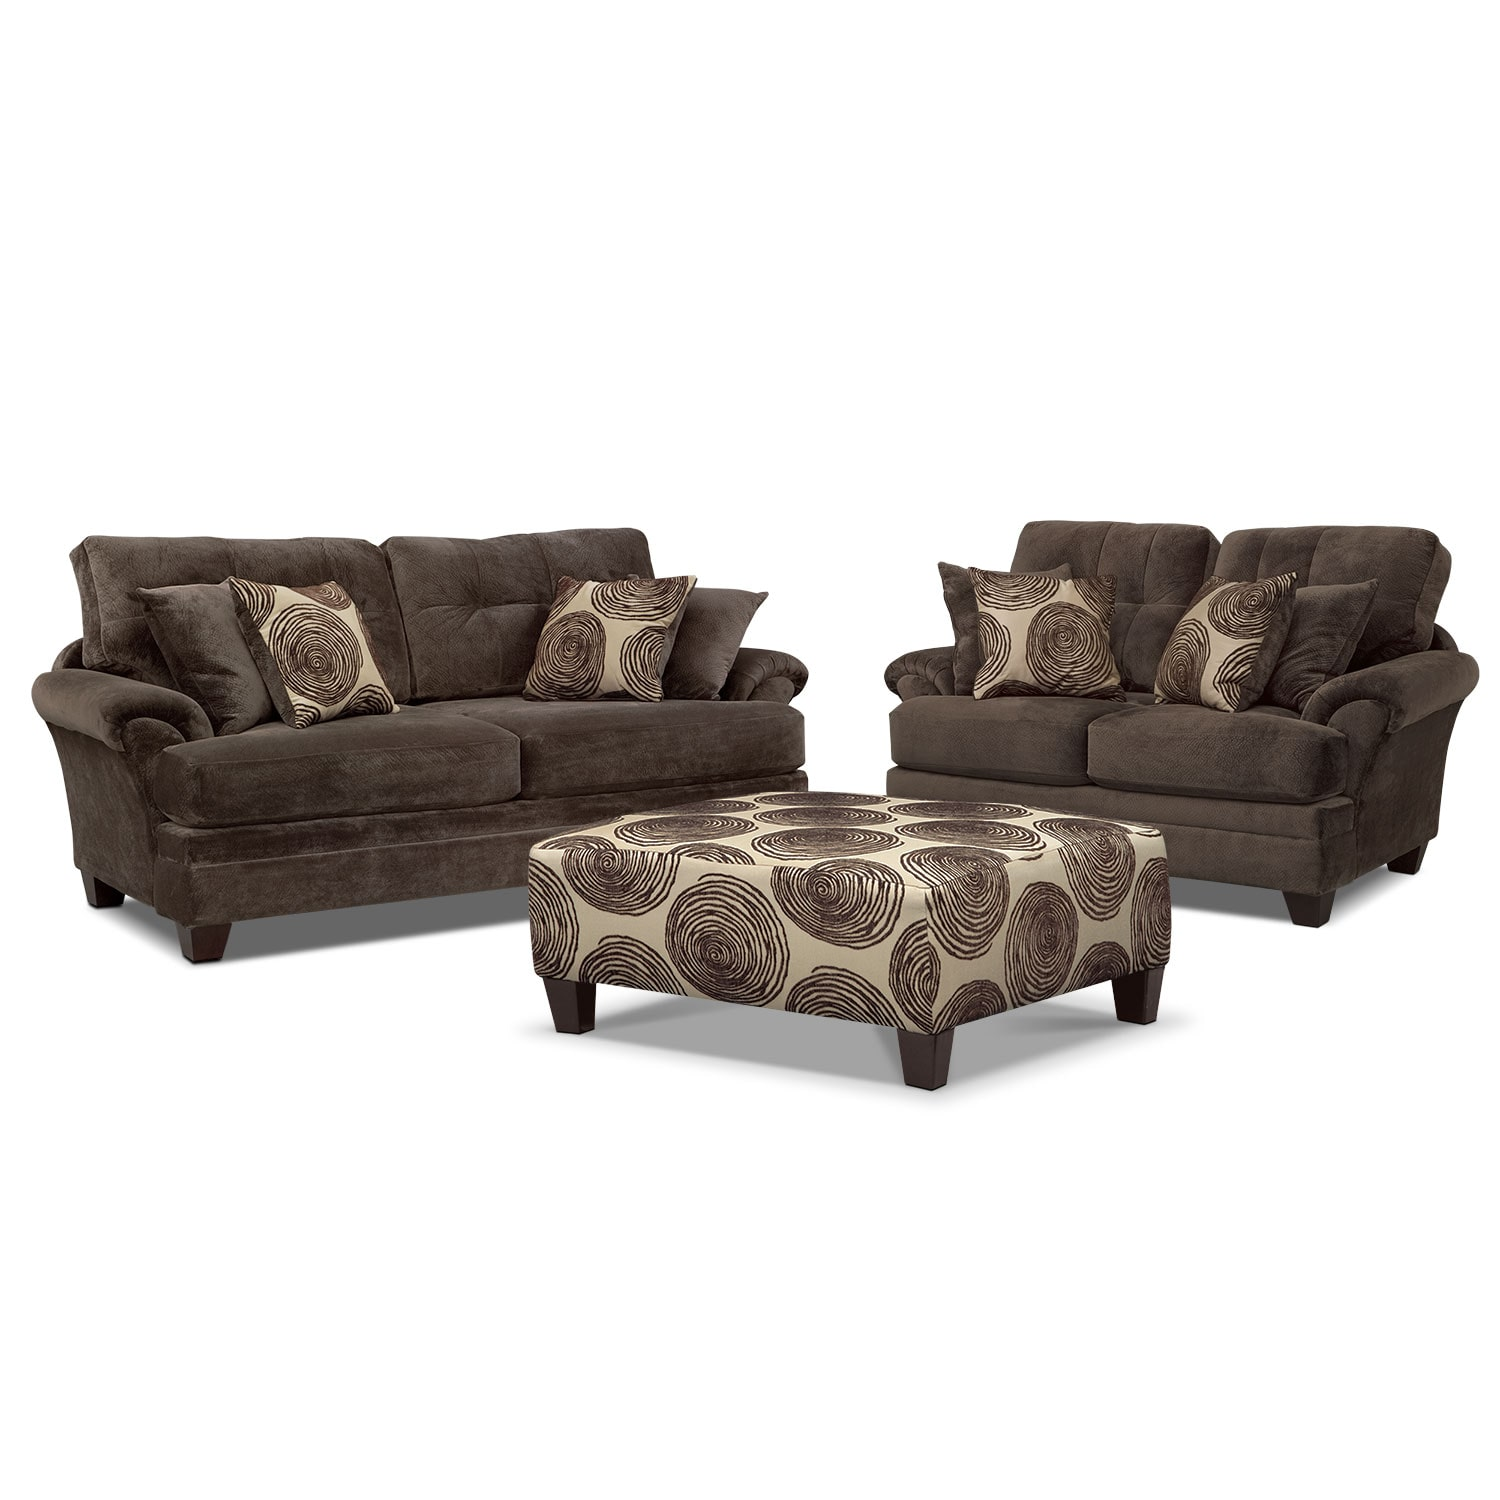 Living Room Furniture - Cordelle Sofa, Loveseat and Cocktail Ottoman Set